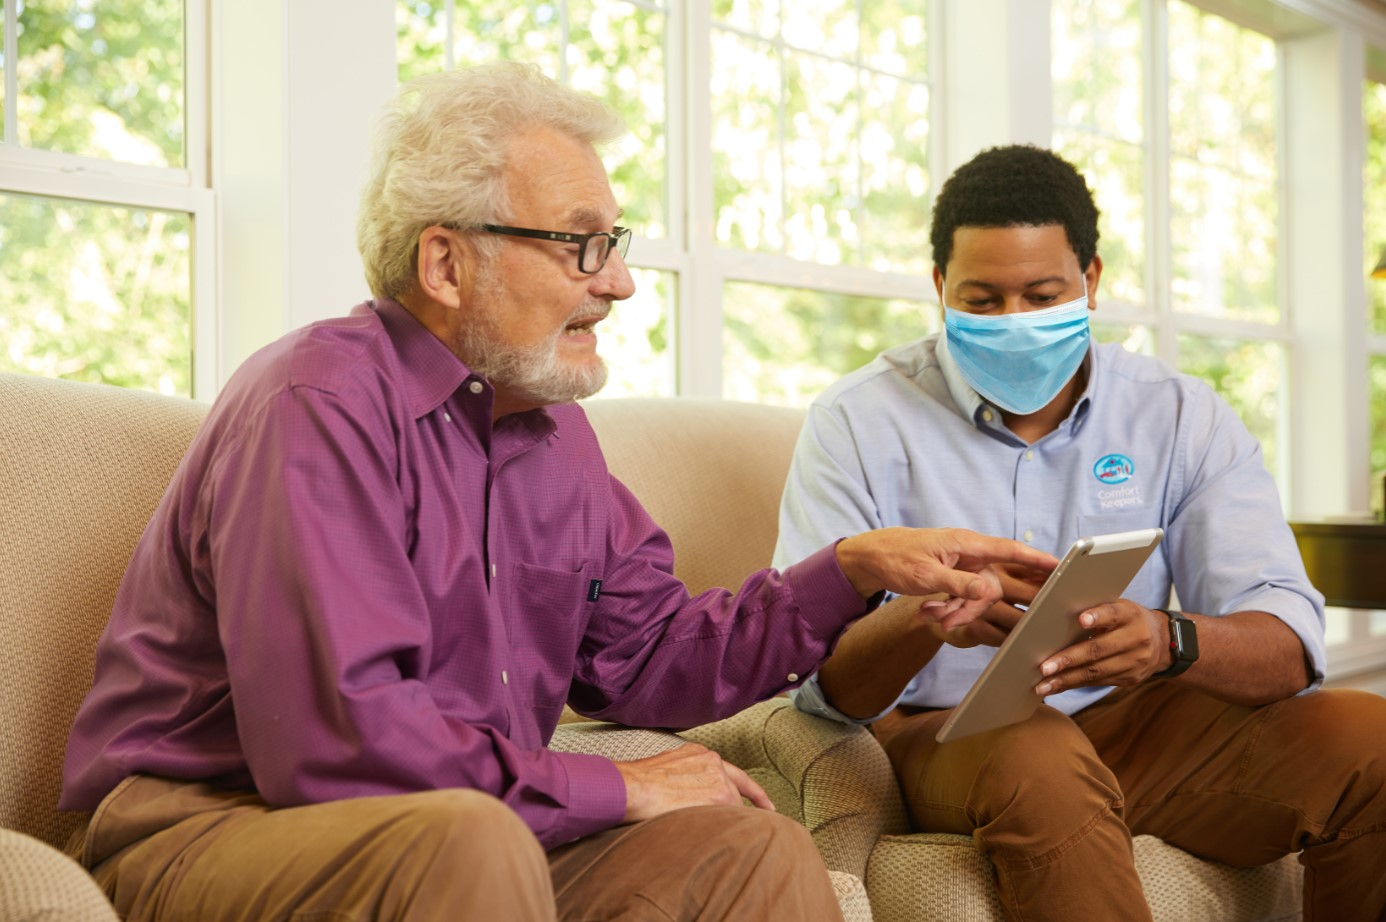 Senior and Comfort Keepers Caregiver in surgical mask touching an iPad tablet